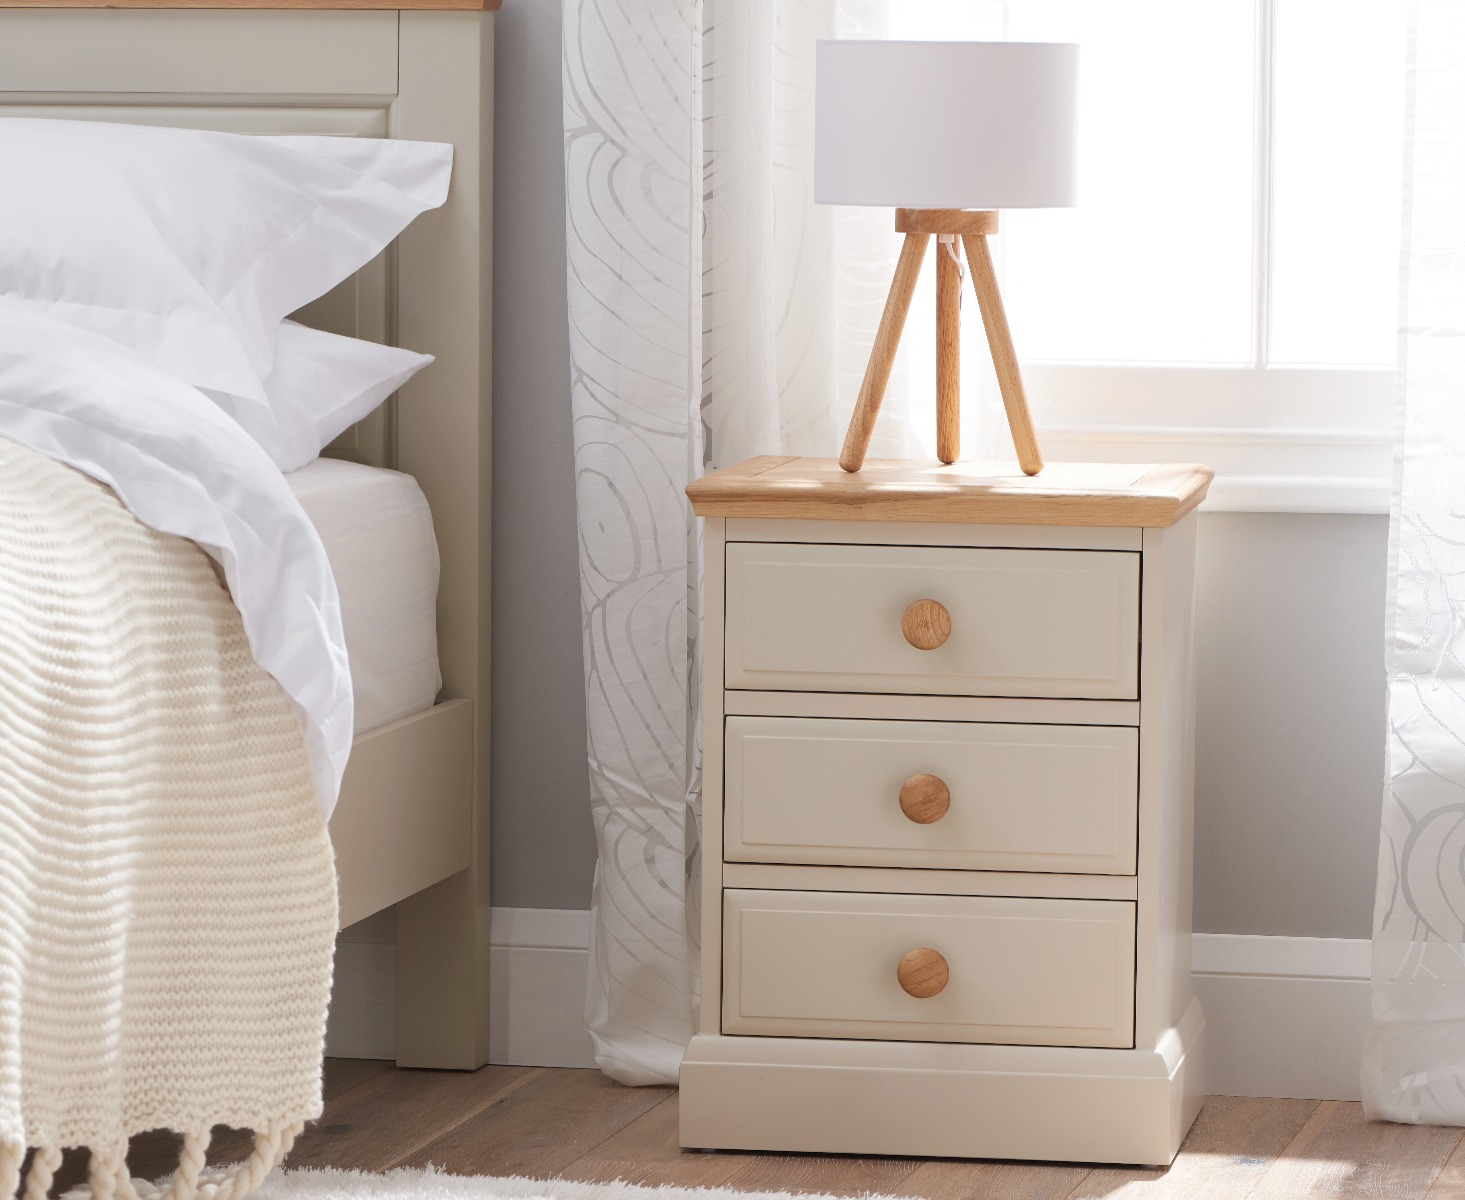 Image of Addison Oak and Stone Painted Large 3 Drawer Bedside Table